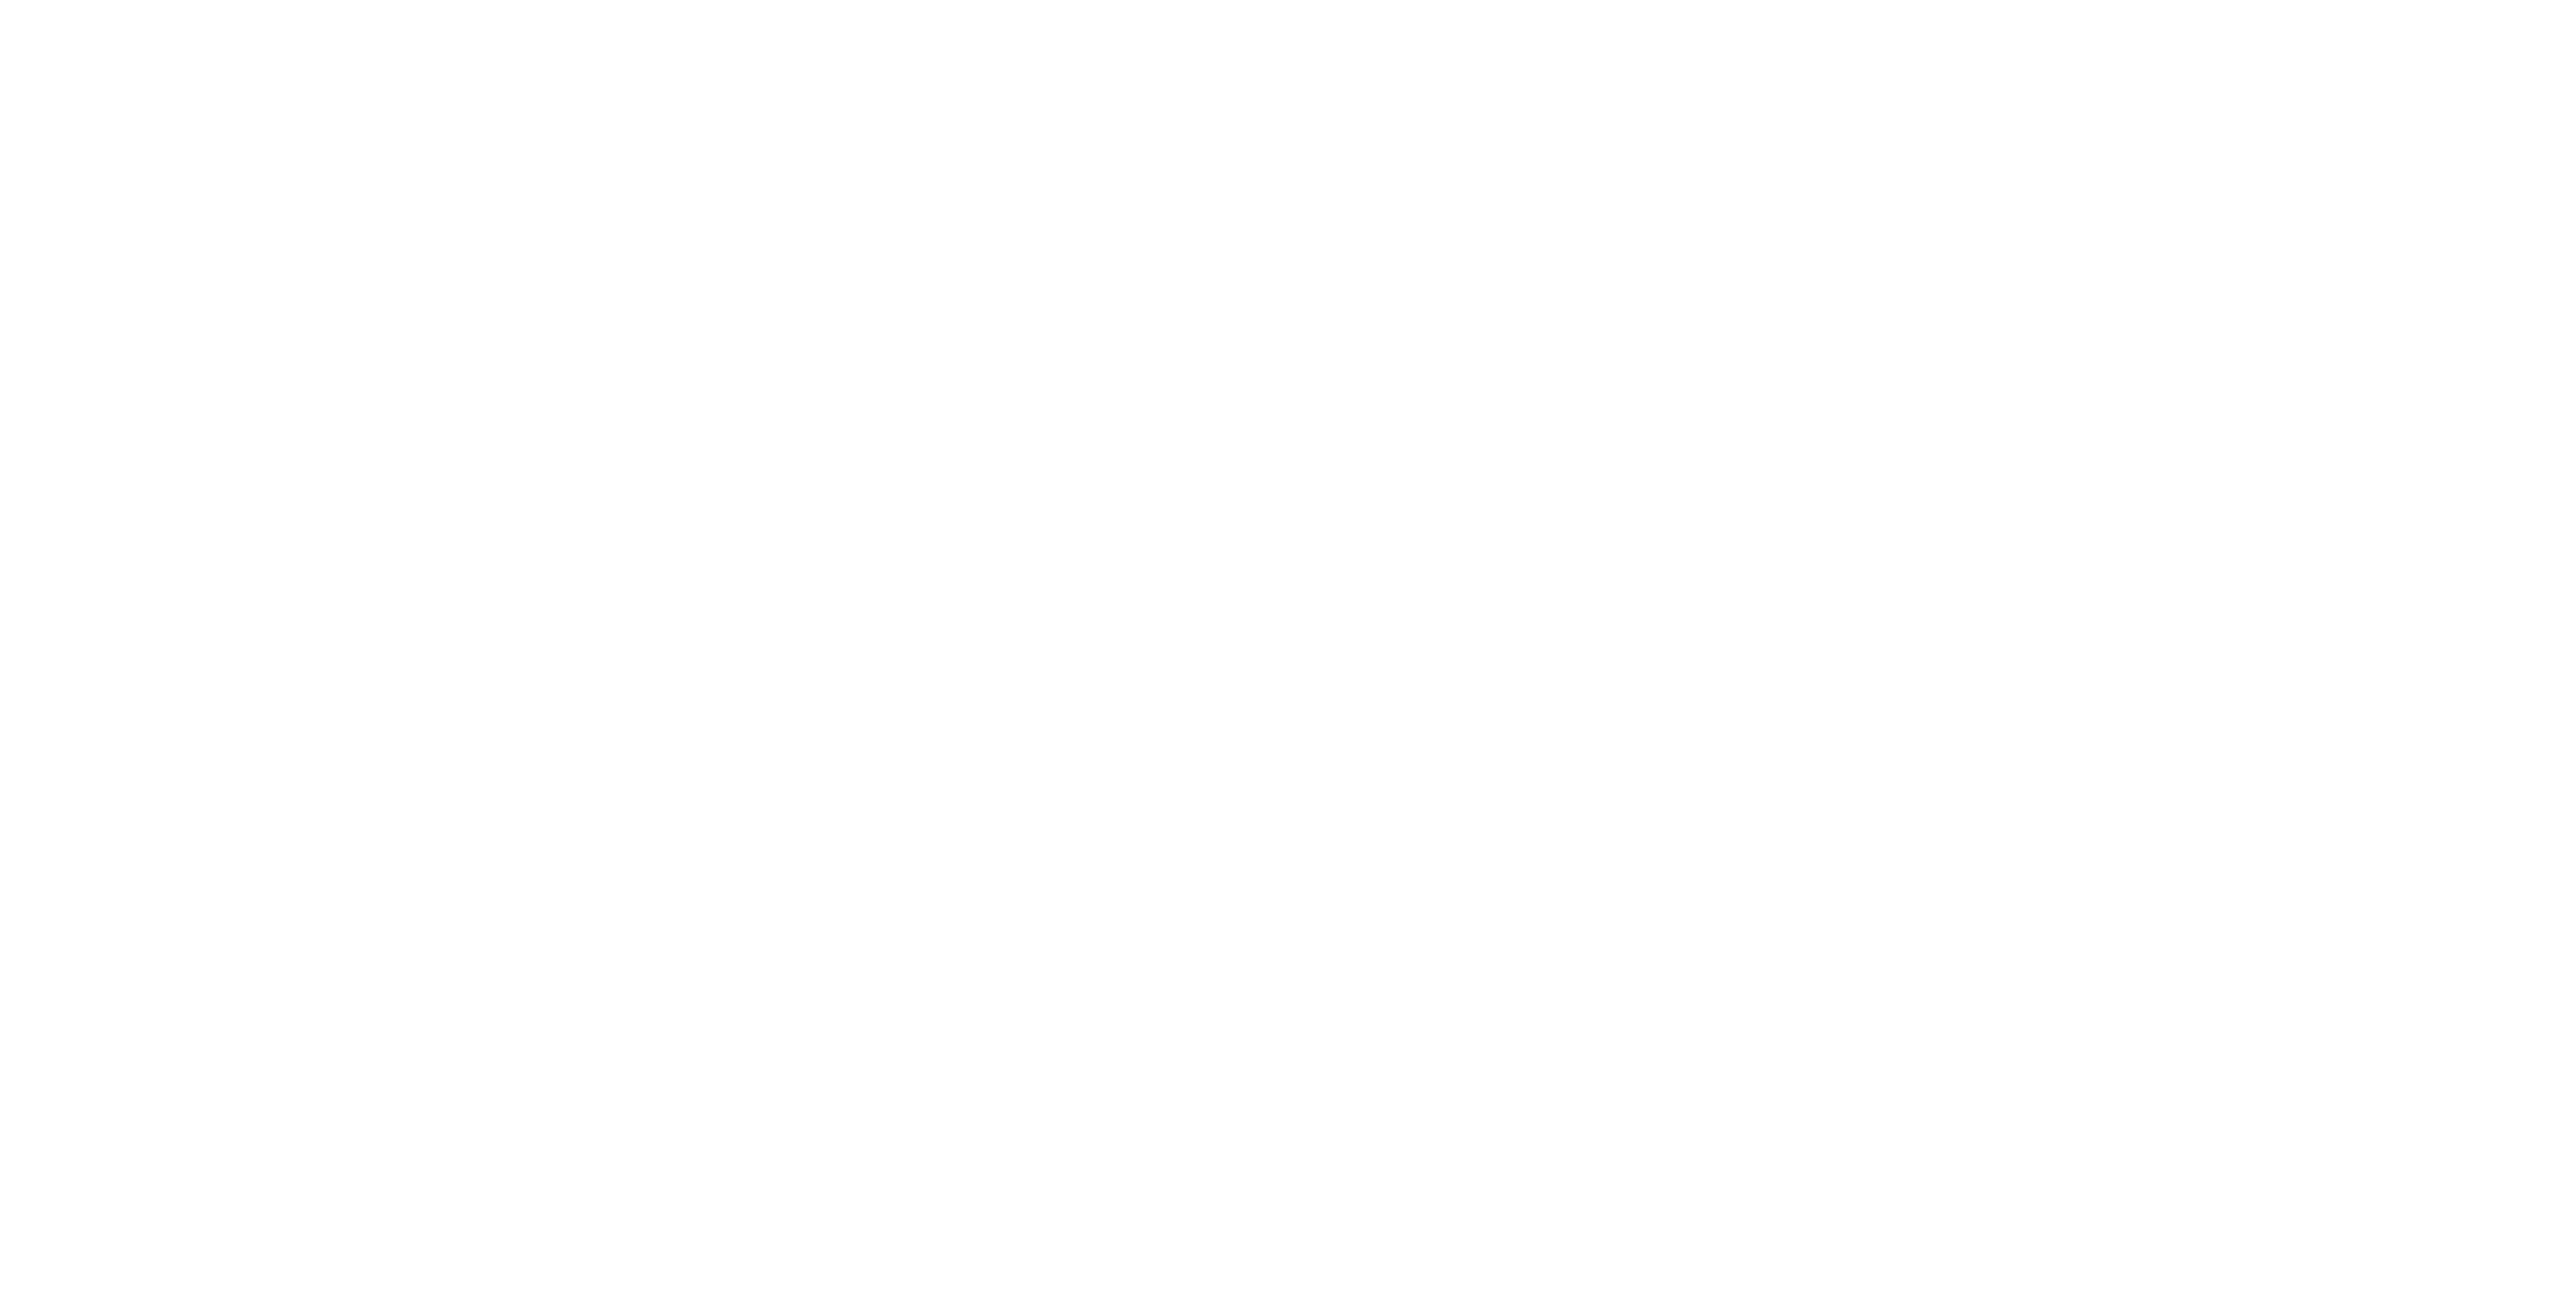 vision11 Karriere-Boost